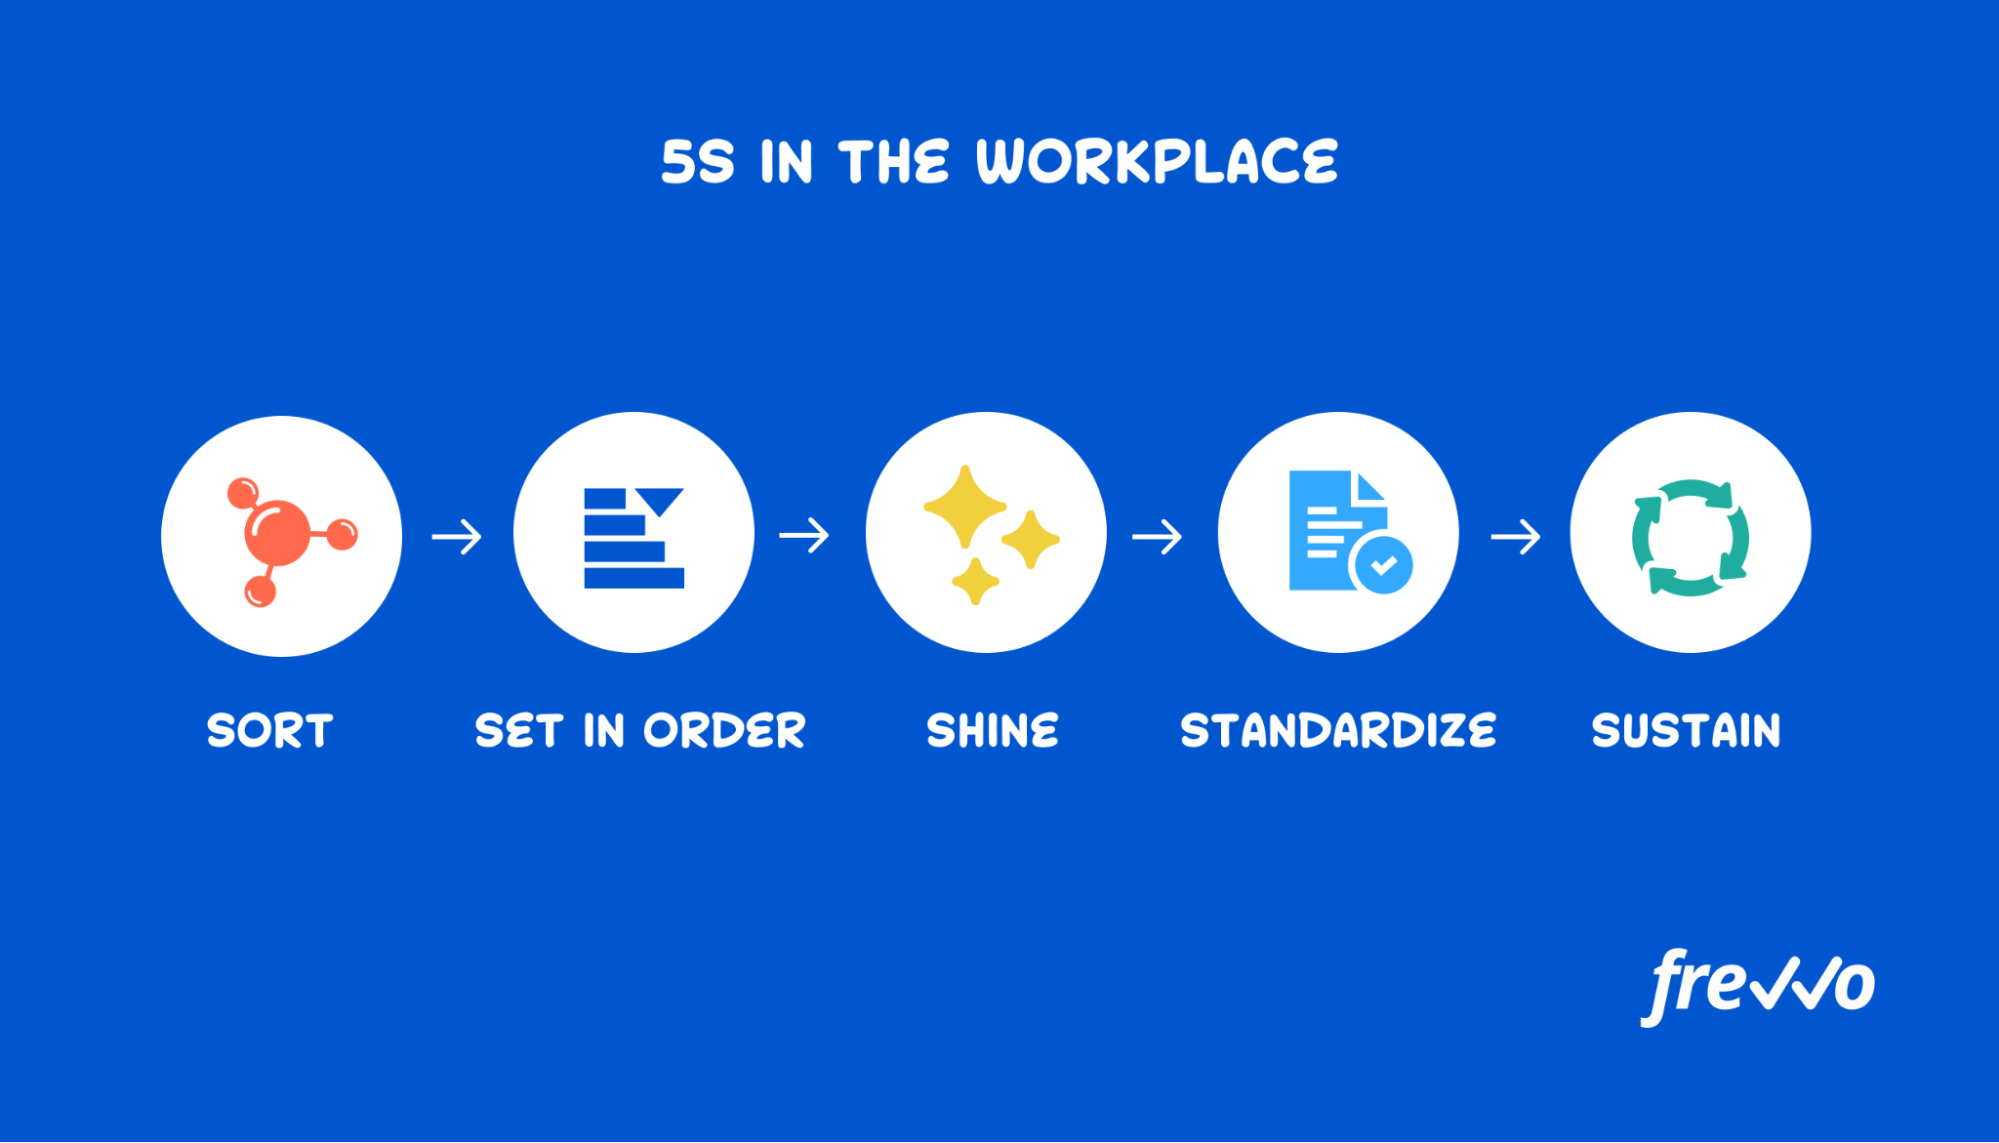 The 5S tactic for continuous process improvement